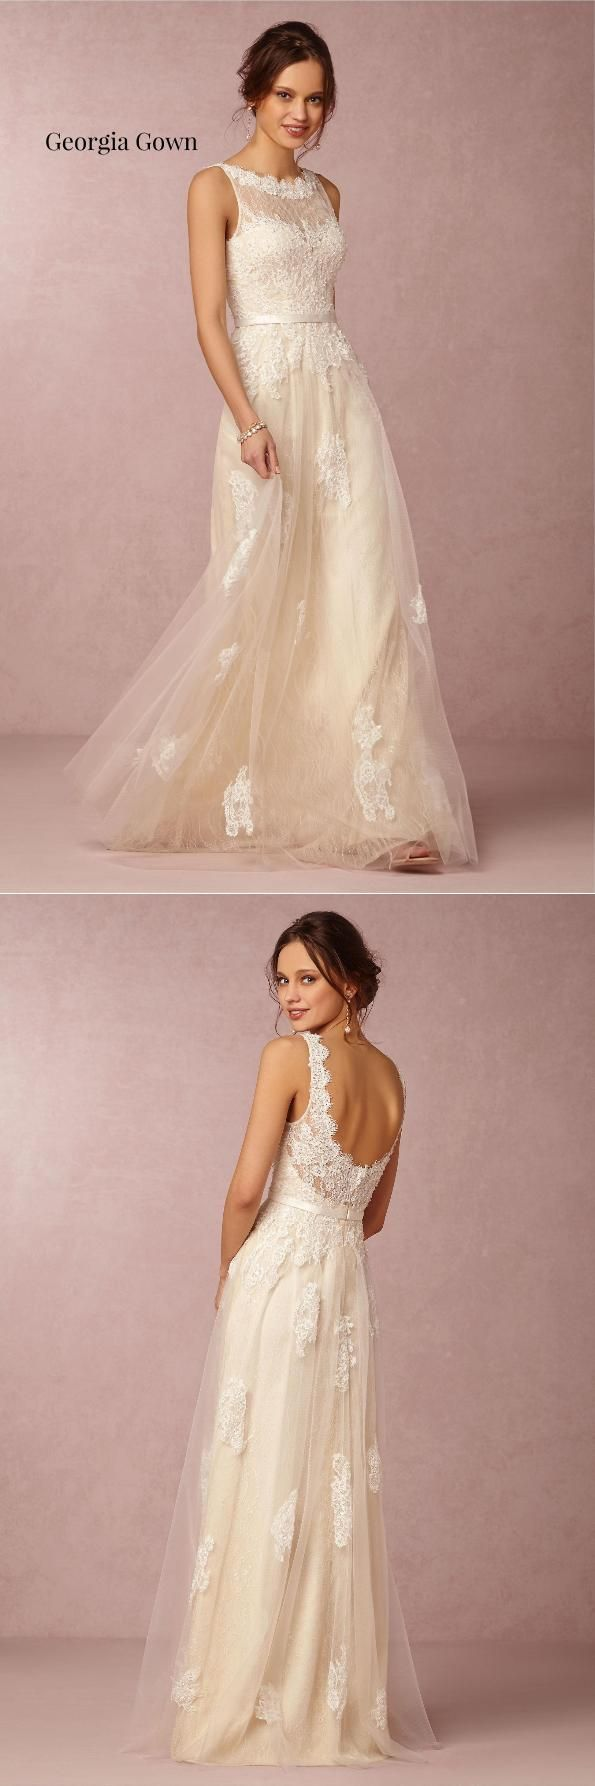 BHLDN Georgia Gown|BHLDN Seraphina Gown|10 Must-See Wedding Dresses Under $1000